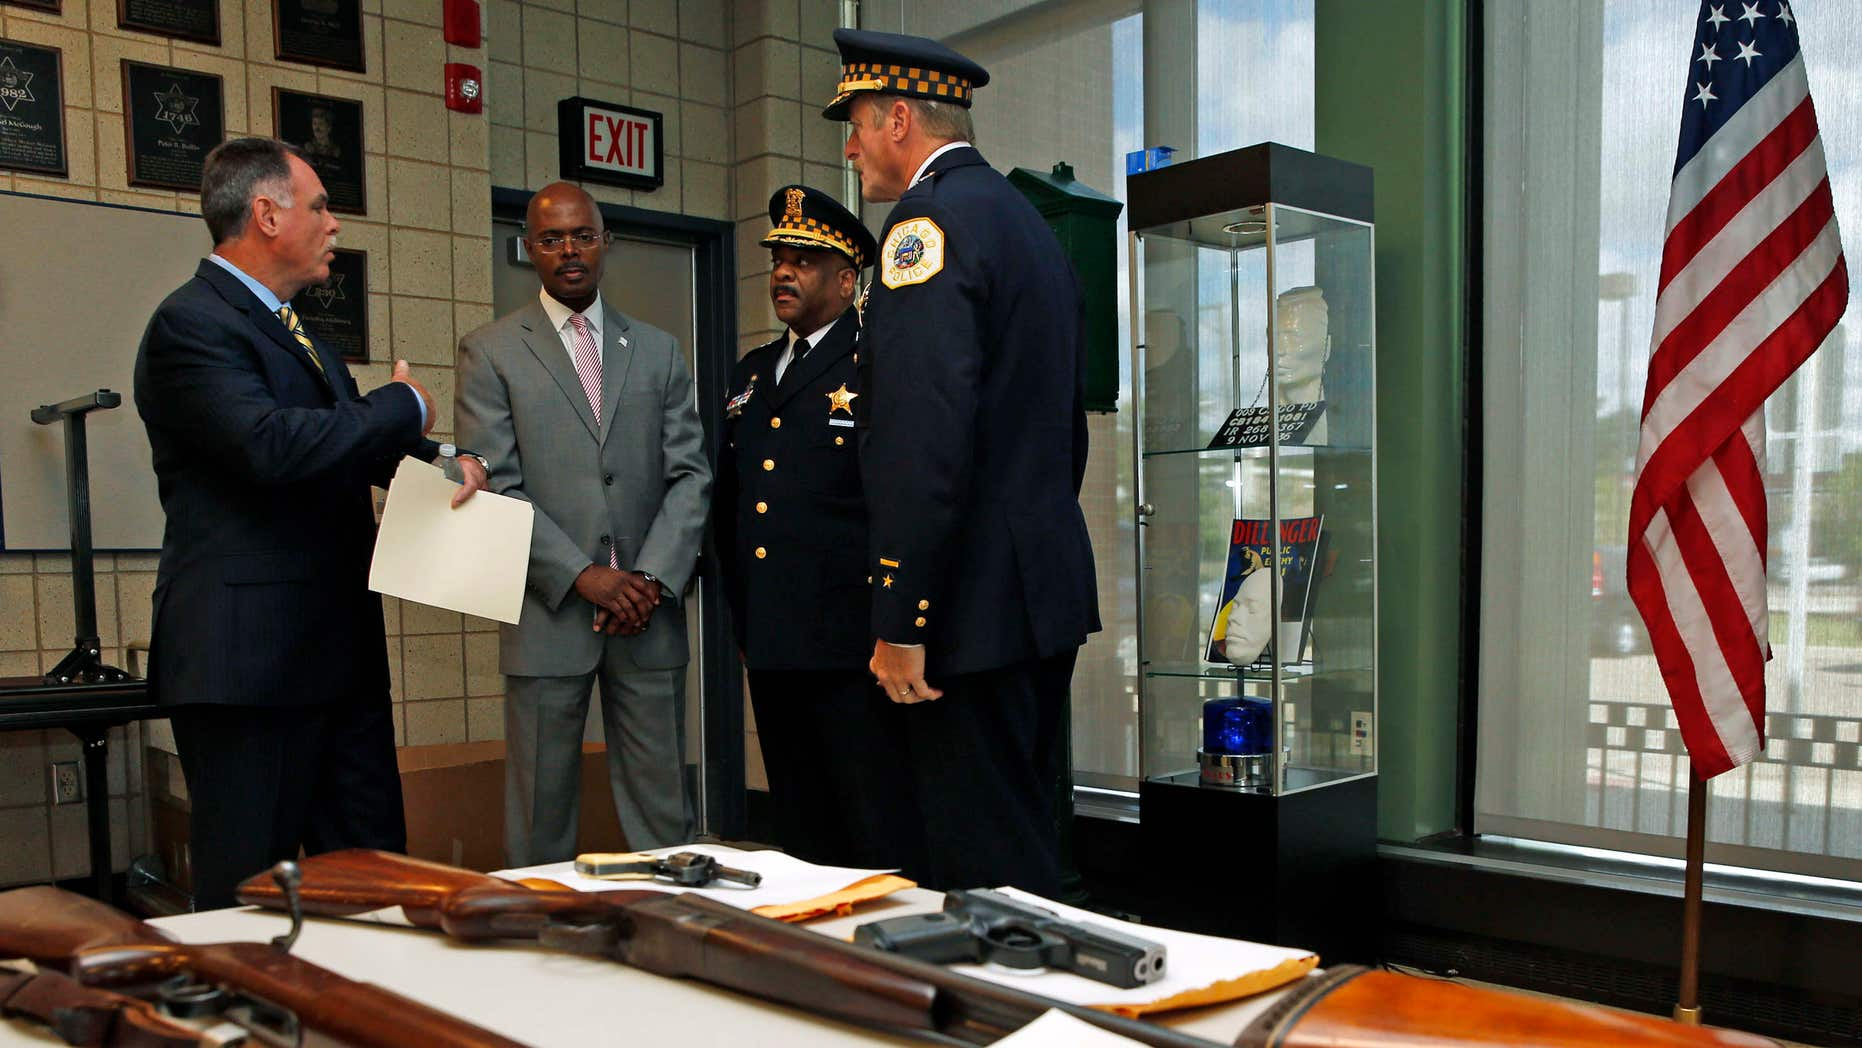 Sept. 3, 2013: Chicago Police Superintendent Garry McCarthy (L) speaks to First Deputy Superintendent Al Wysinger (2nd L), Deputy Chief of Area Central Patrol Eddie Johnson (2nd R) and Bureau of Patrol Chief Wayne Gulliford after a news conference on Chicago Police having seized more than 4,800 illegal firearms in 2013 in Chicago, Illinois,